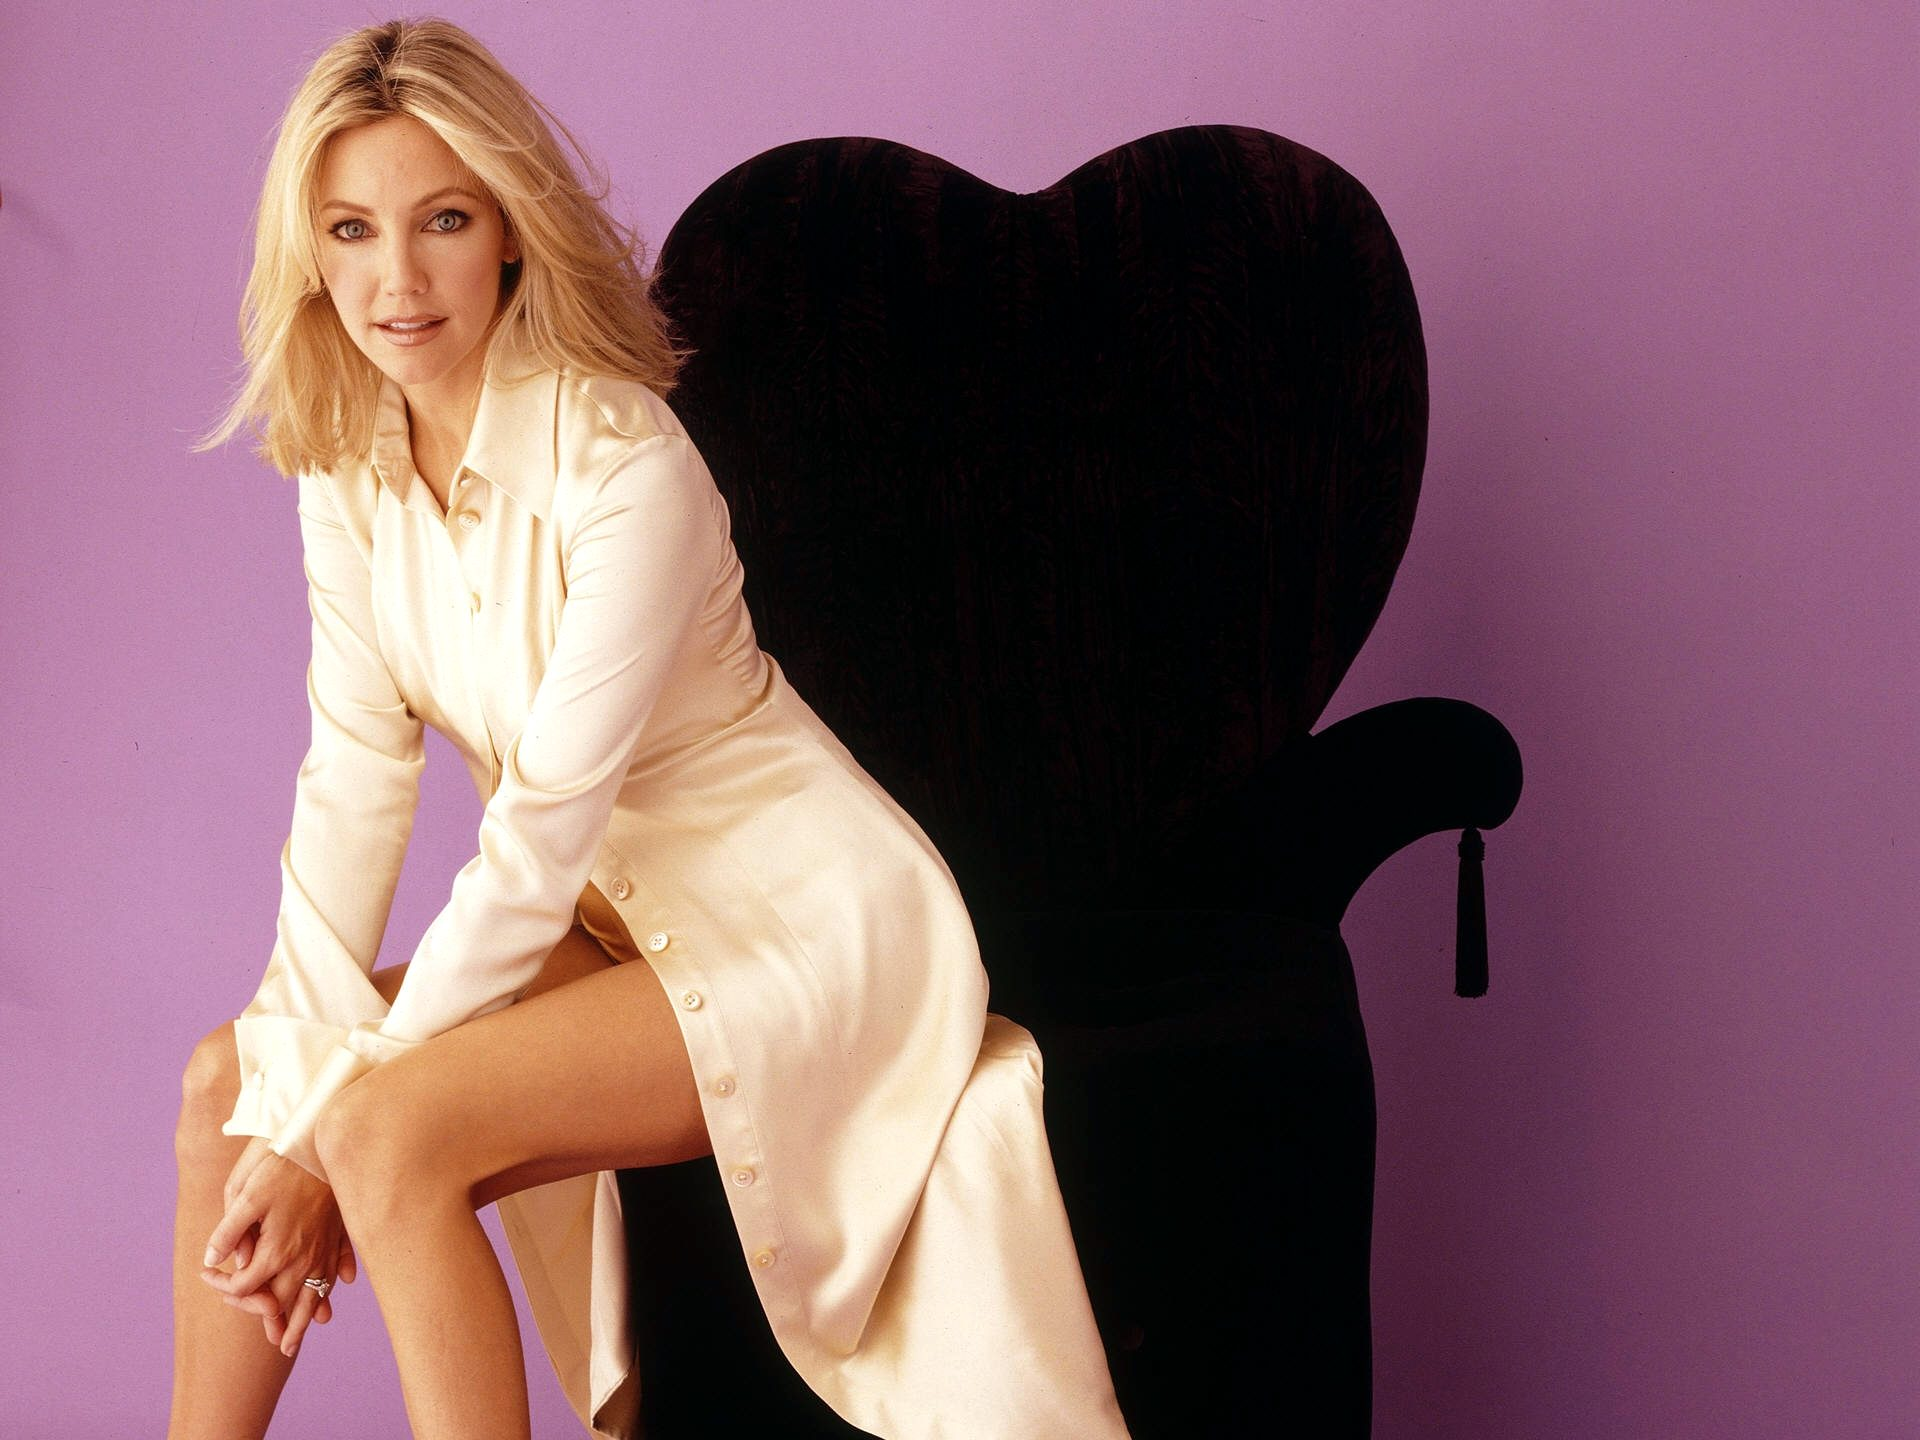 1920x1440 - Heather Locklear Wallpapers 14